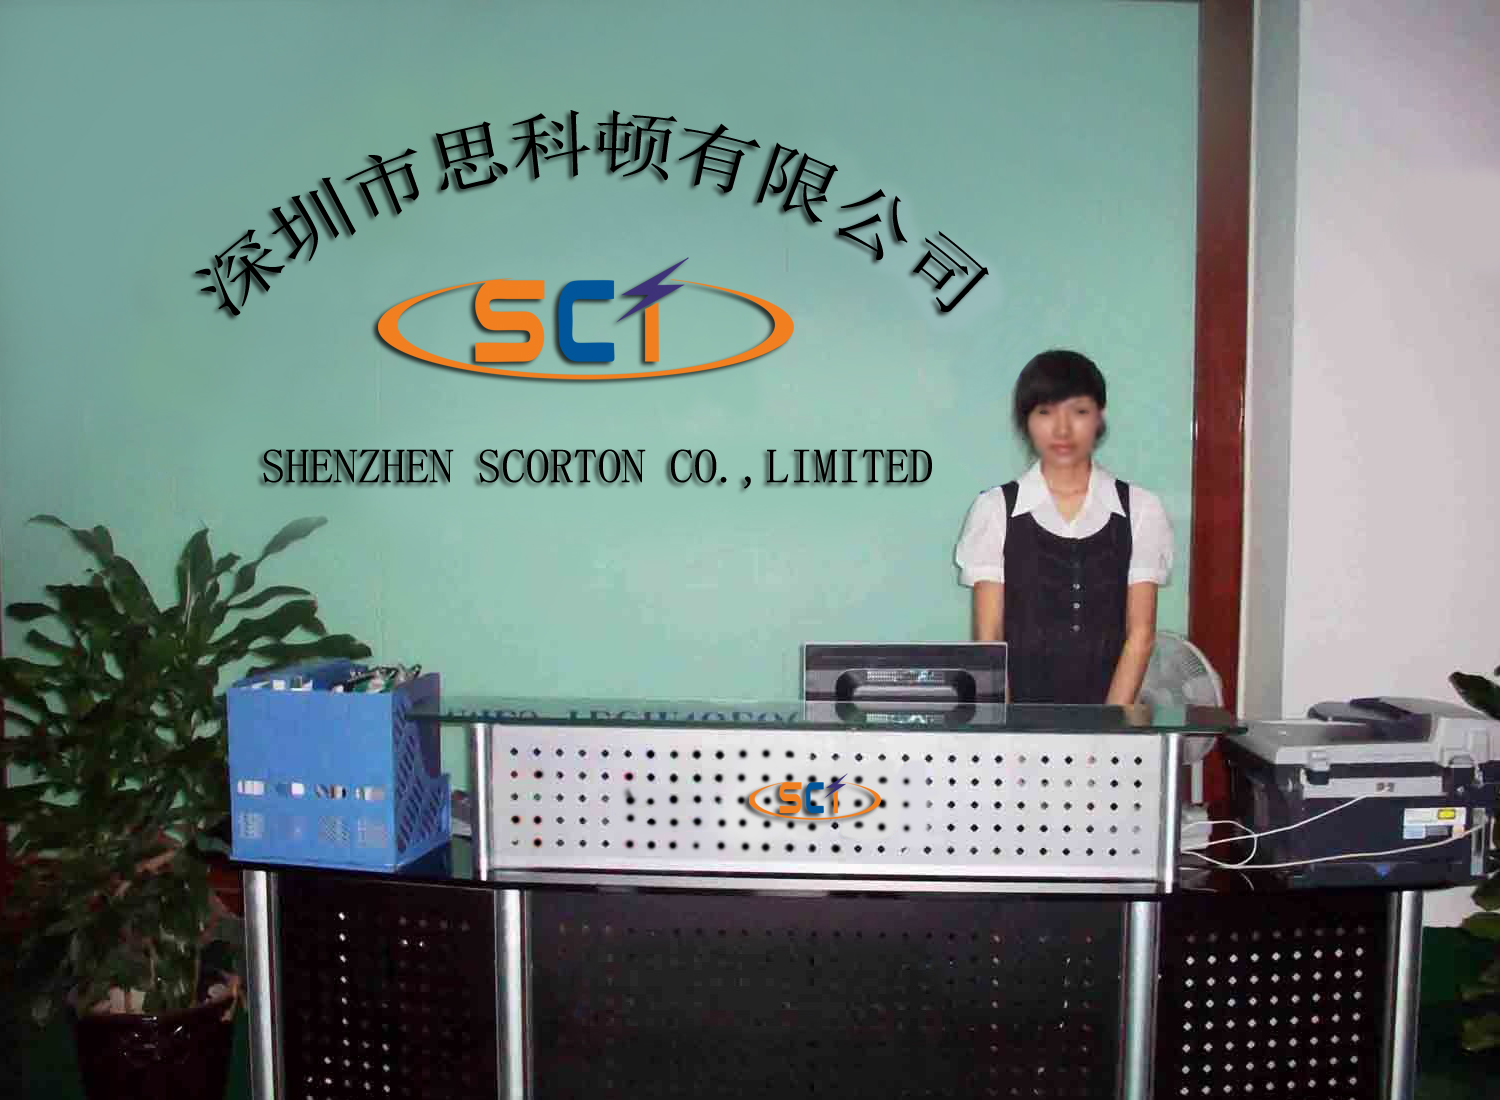 Shenzhen Scorton Co., Ltd.